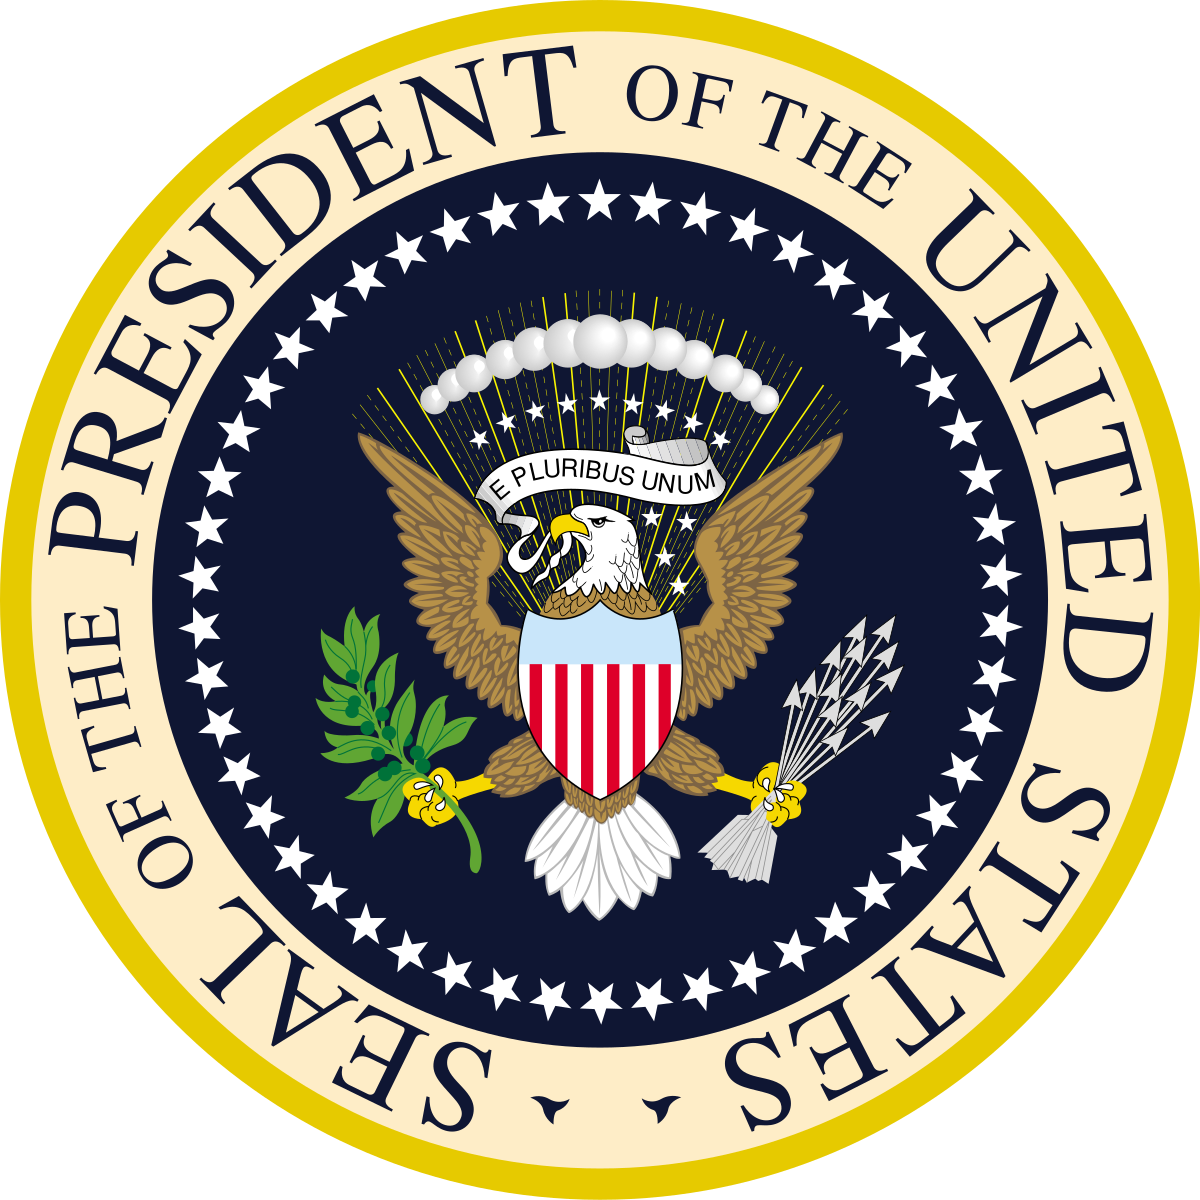 Presidents clipart president podium. Seal of the united